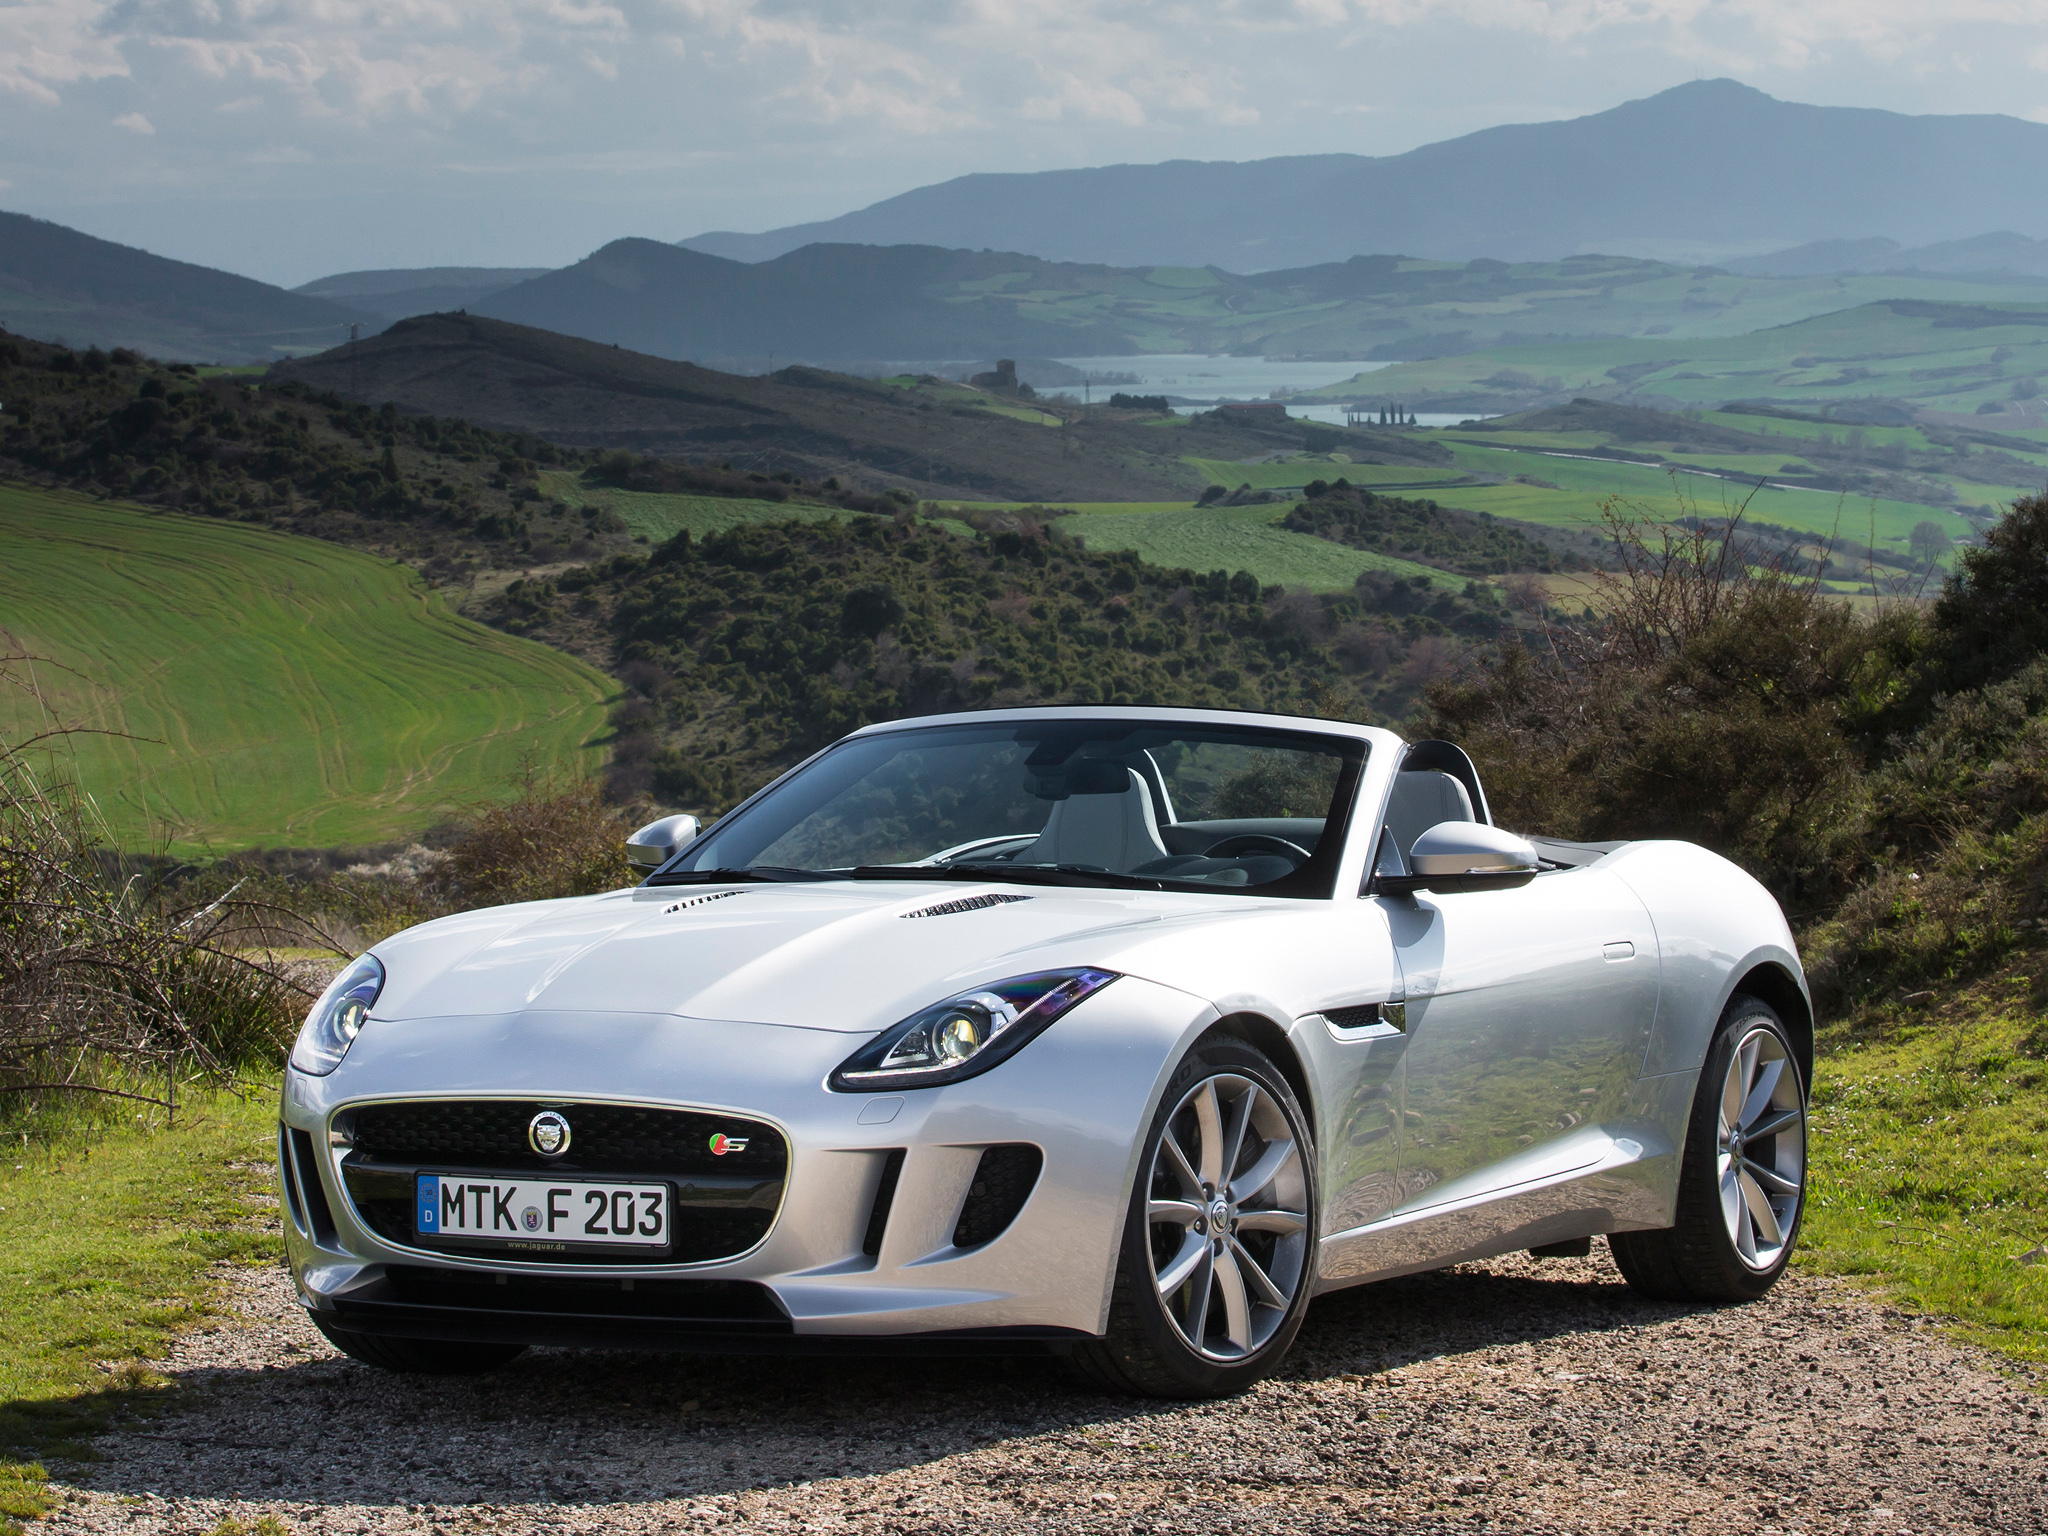 Jaguar Car Wallpaper Wallpapers High Quality: 45 Jaguar F-Type HD Wallpapers